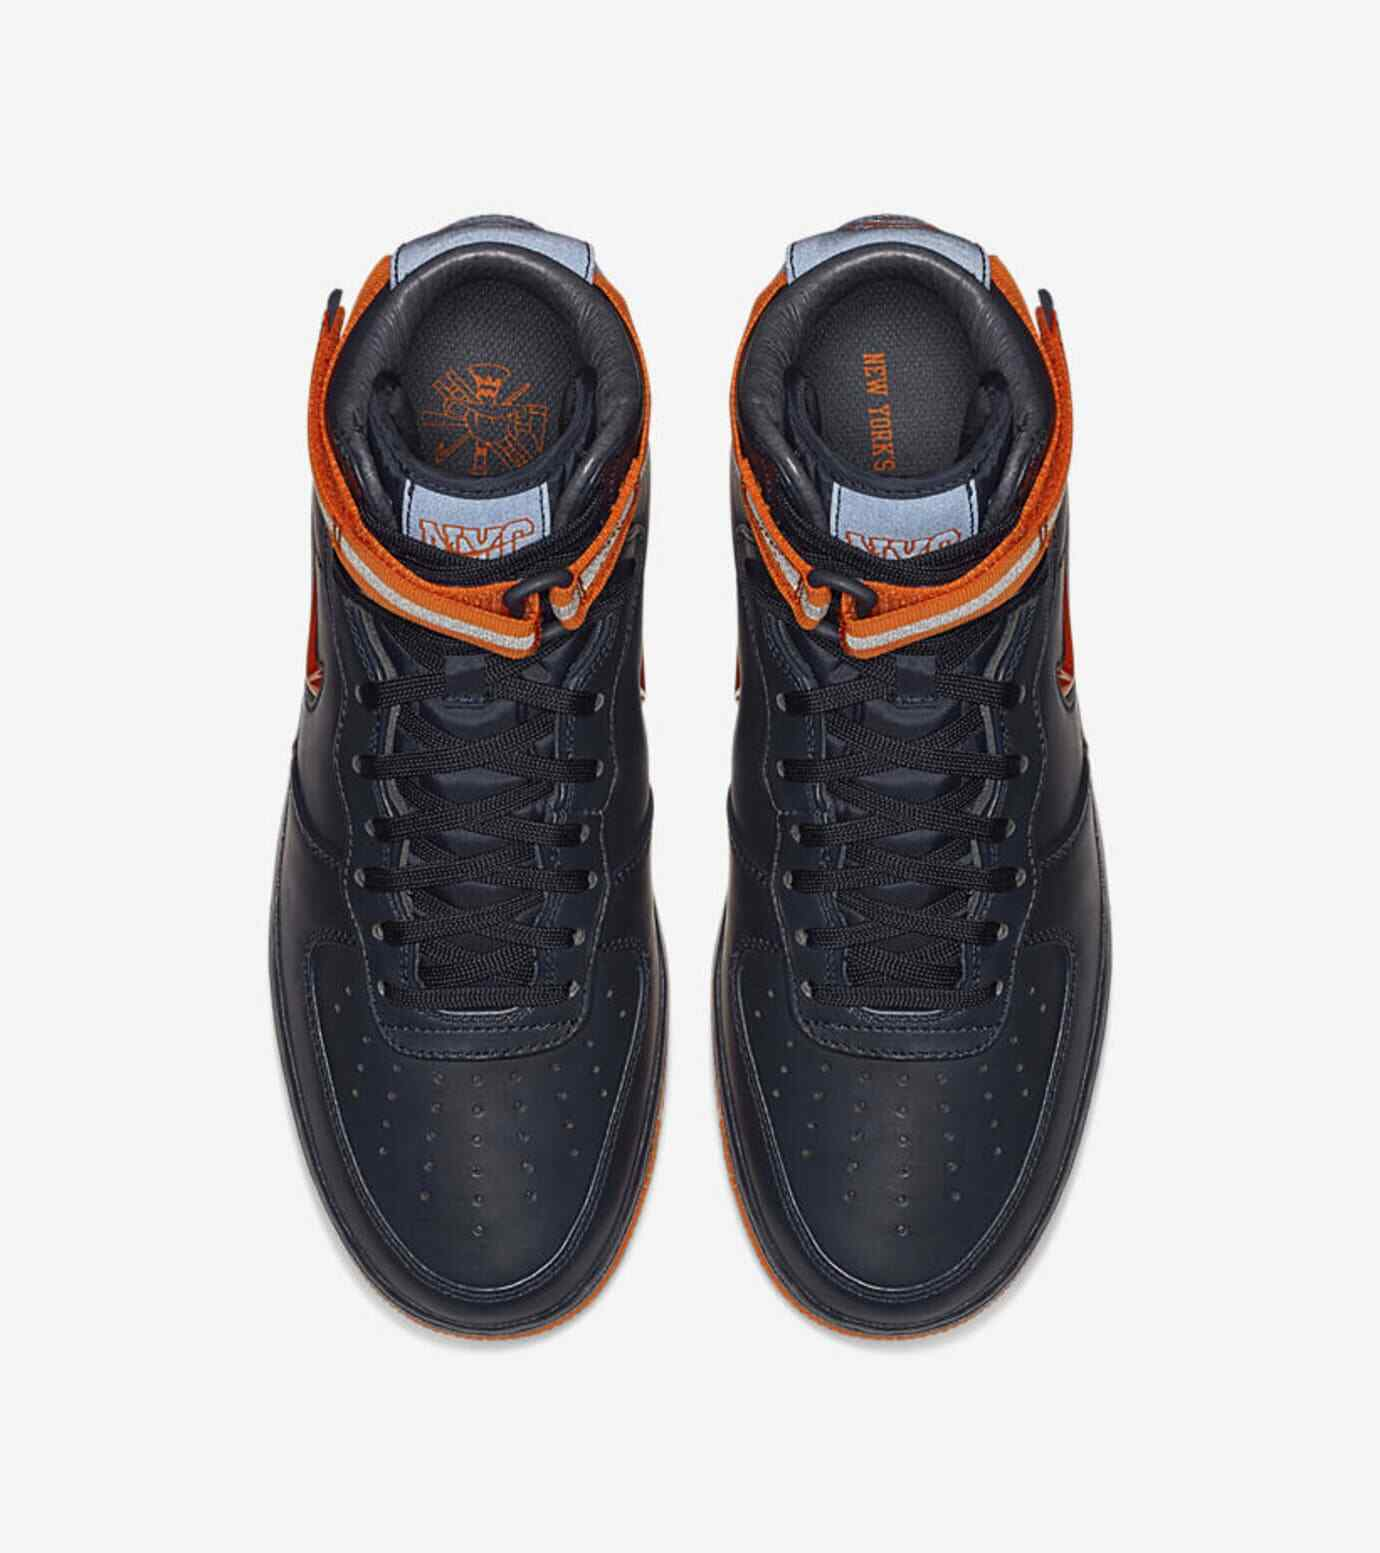 Nike Air Force 1 Mid PRM QS Shoes Obsidian Orange AO1639 400 Mens Size 10.5